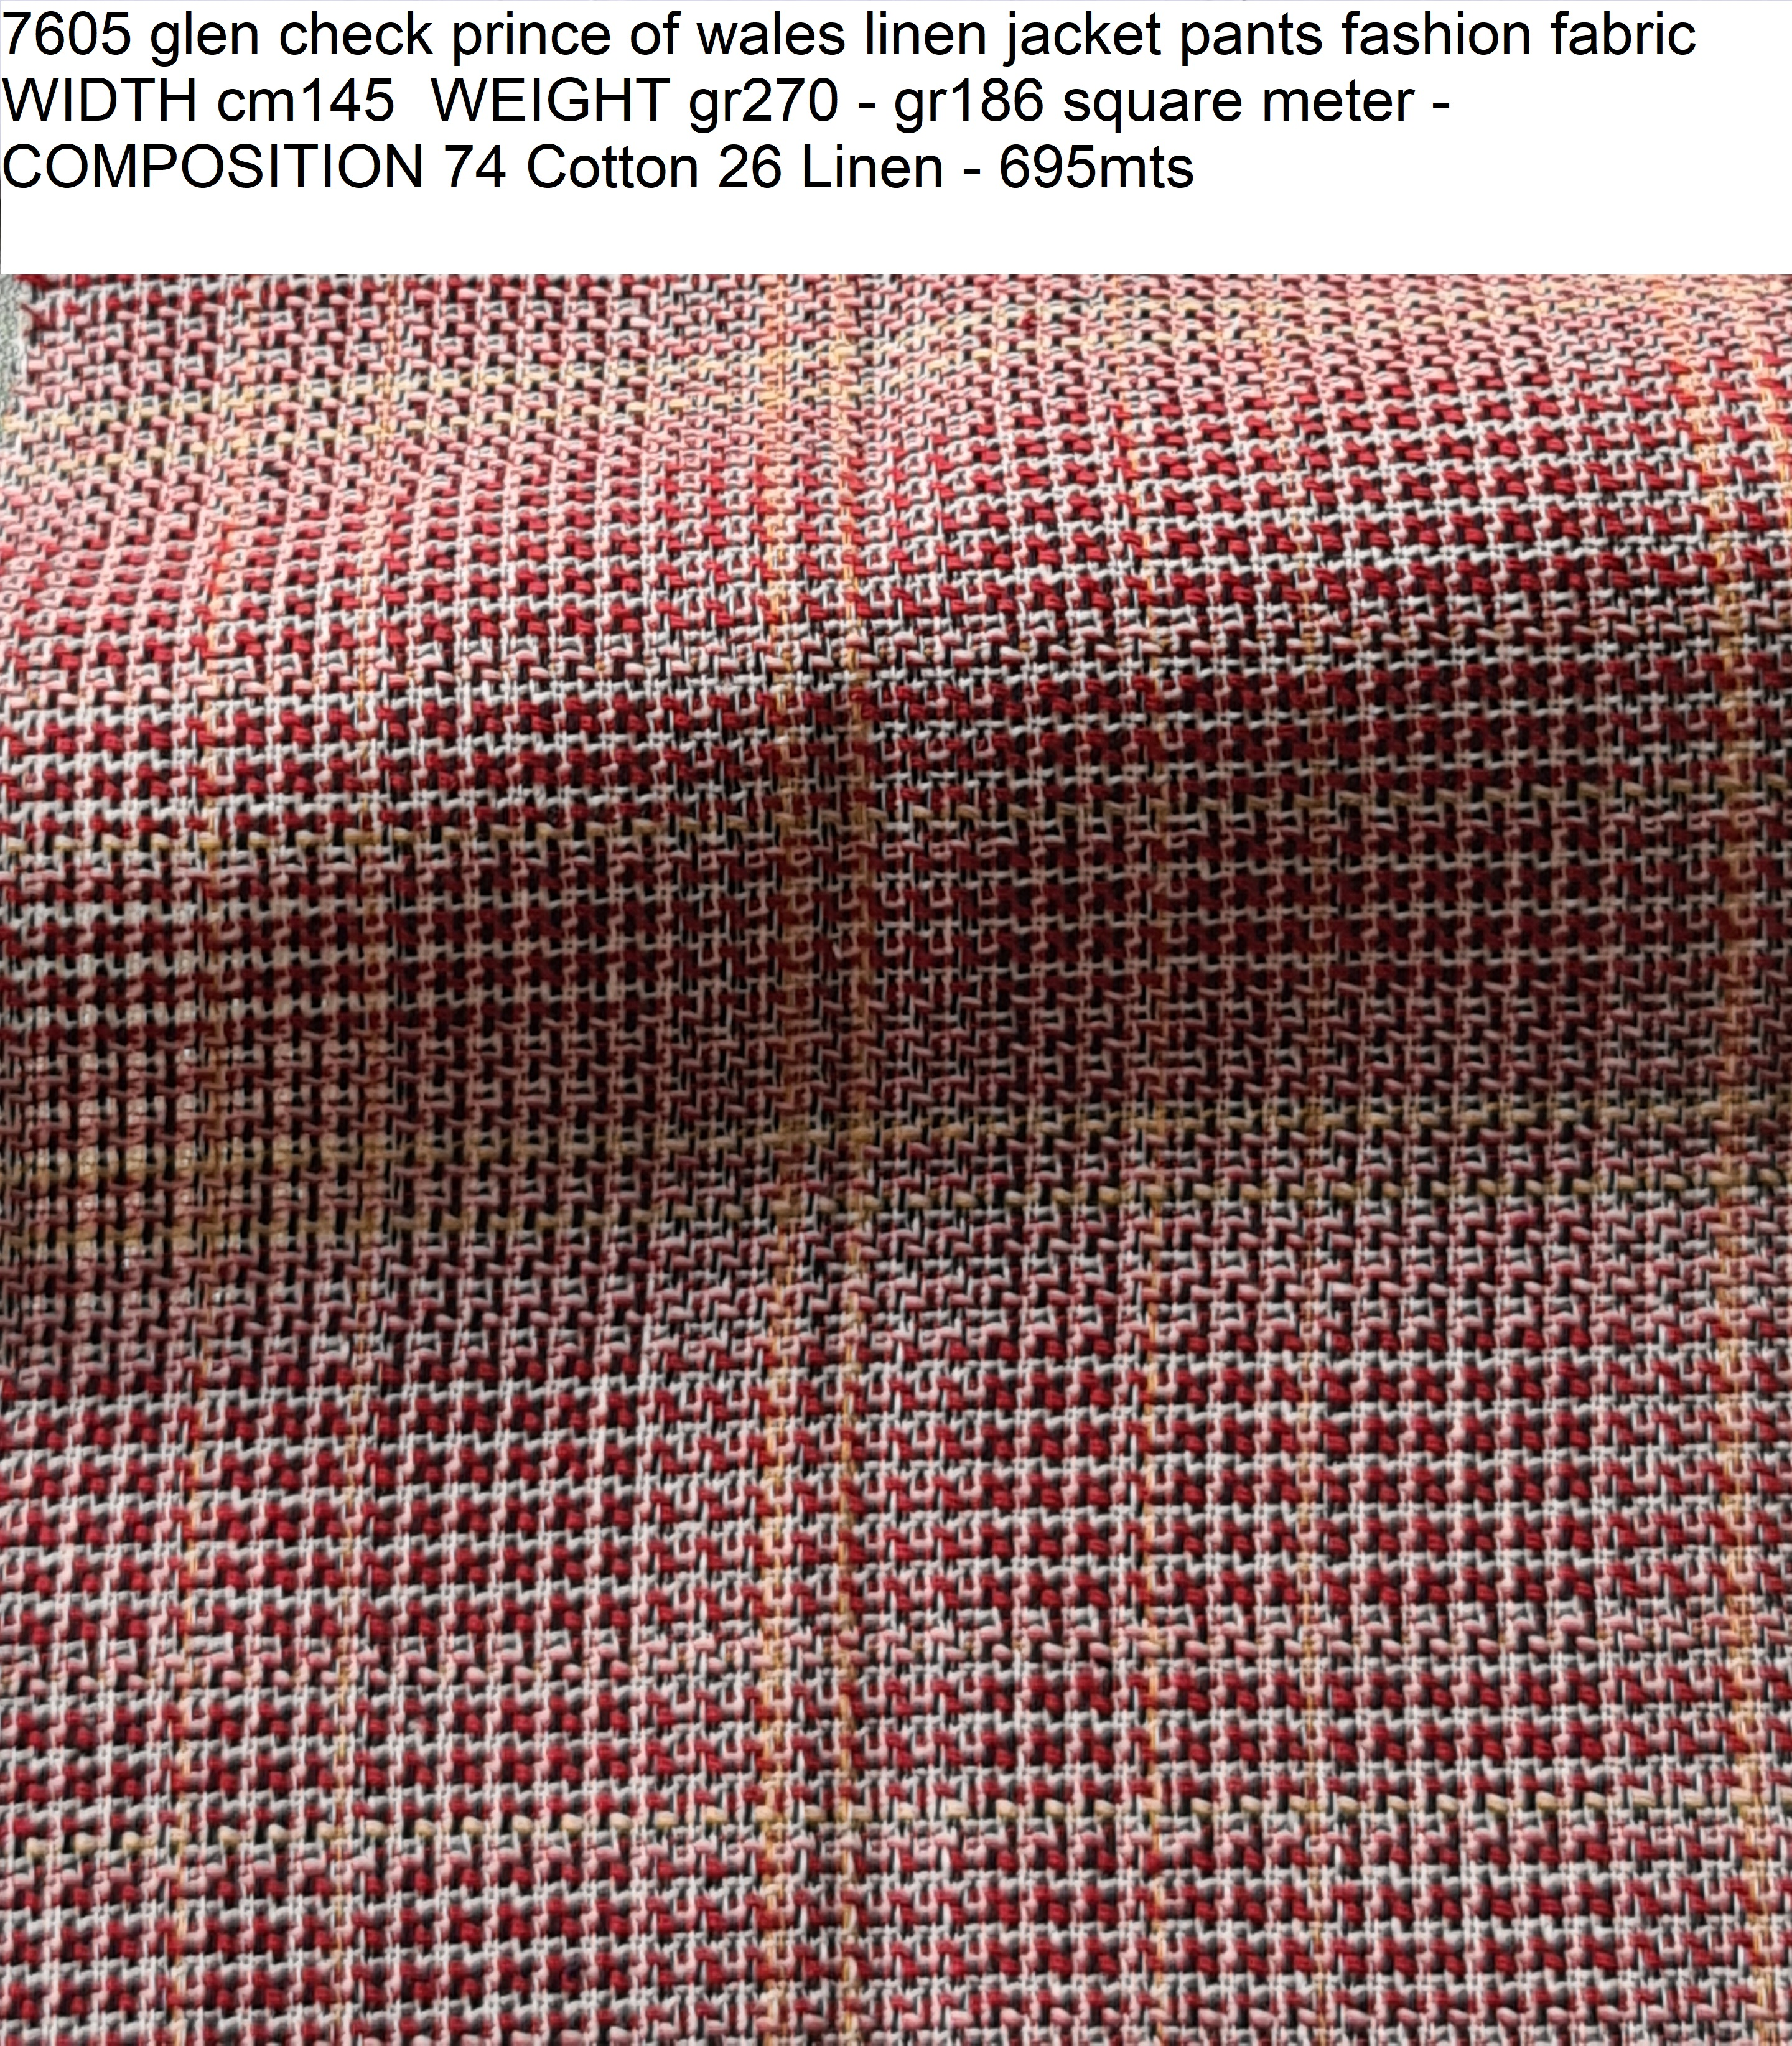 7605 glen check prince of wales linen jacket pants fashion fabric WIDTH cm145 WEIGHT gr270 - gr186 square meter - COMPOSITION 74 Cotton 26 Linen - 695mts